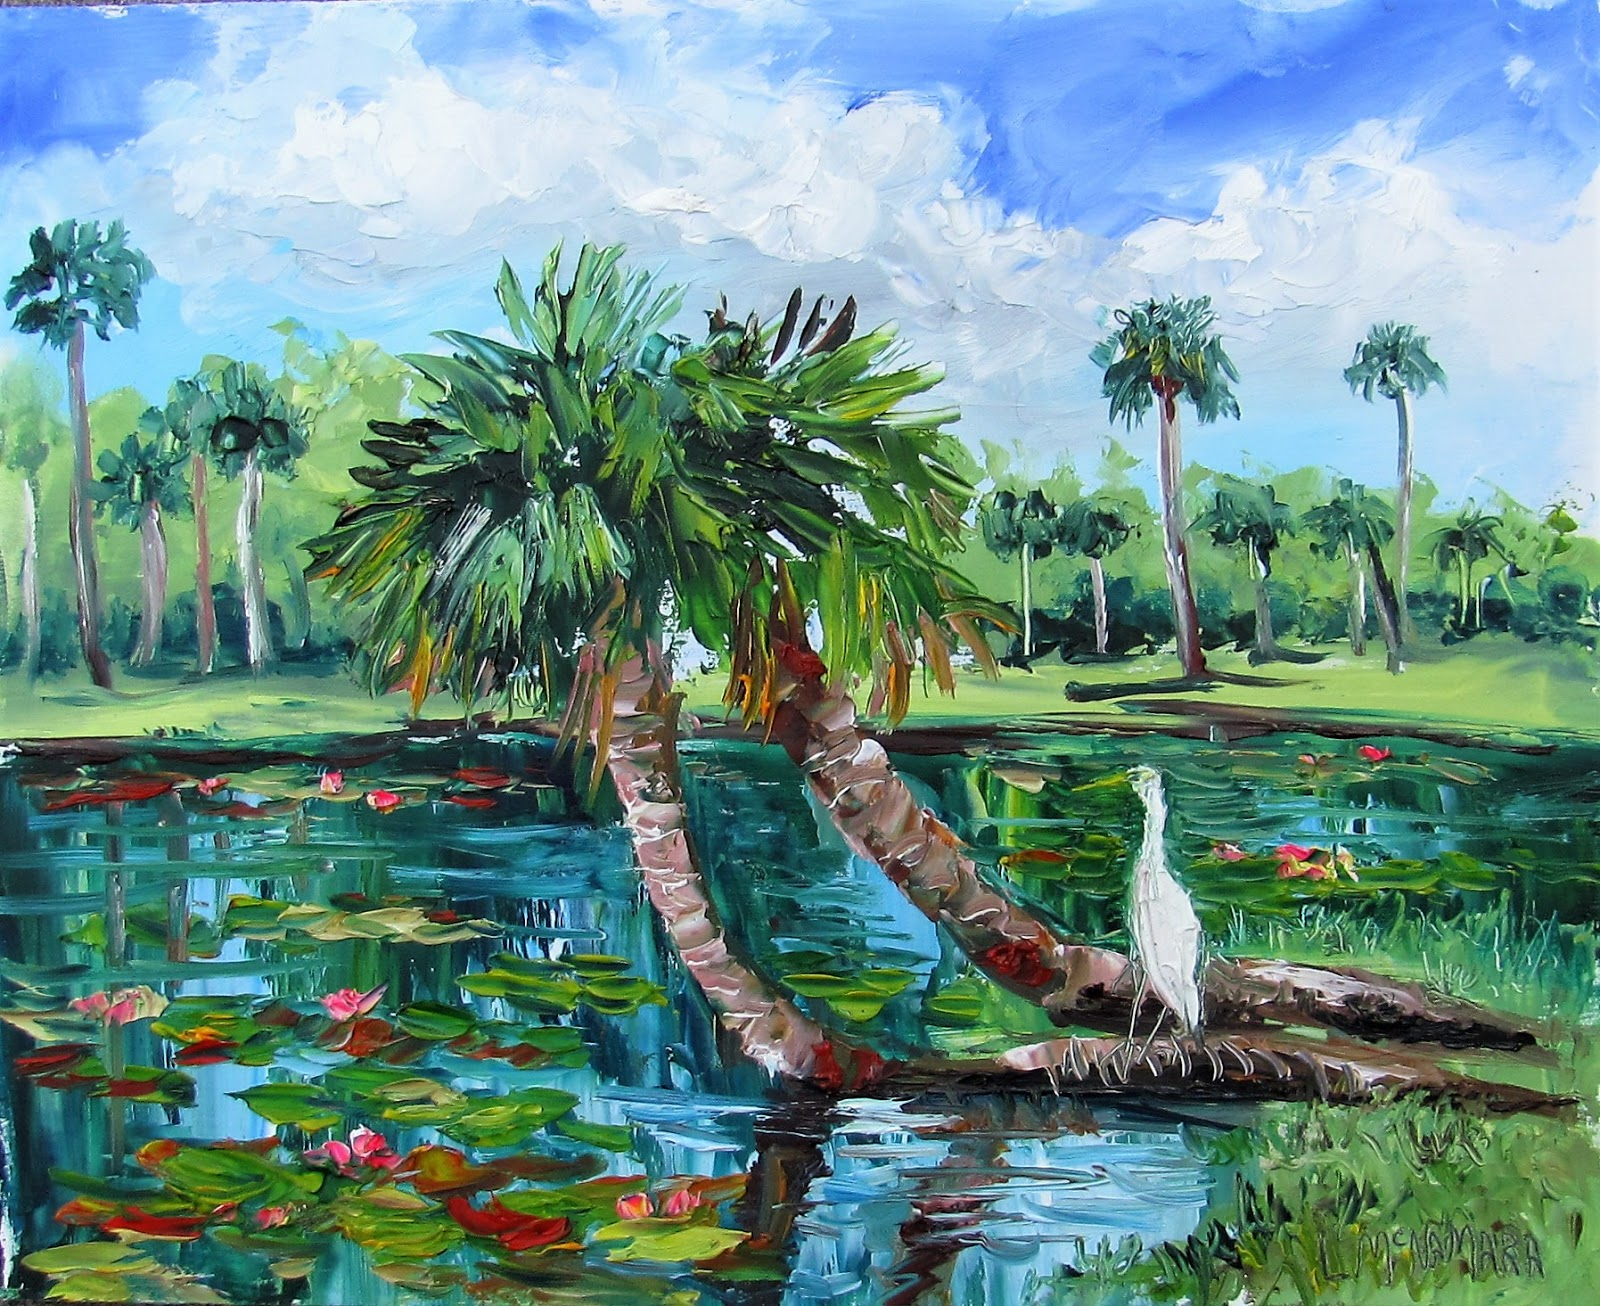 Lori S Stormy Art And Daily Paintings 2016